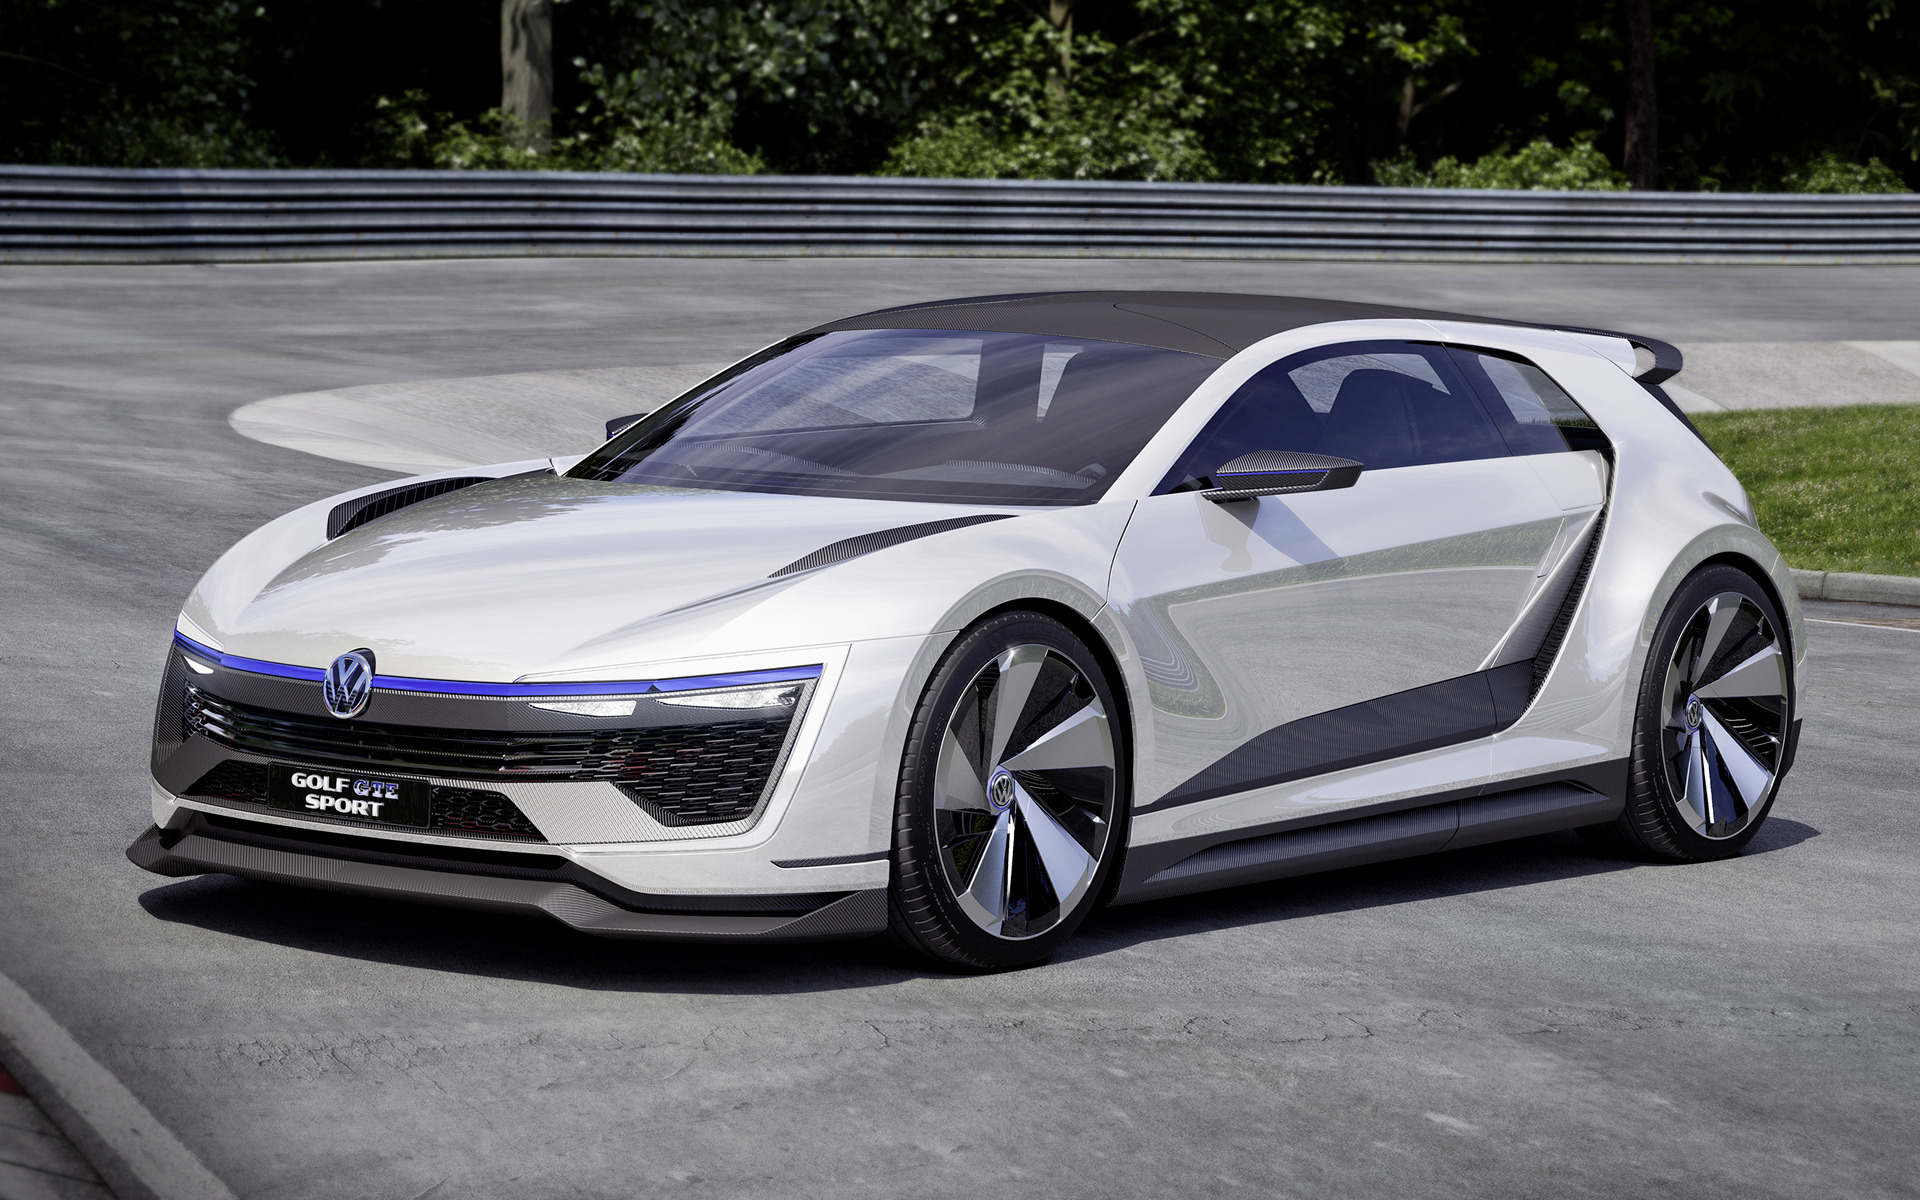 2015 Volkswagen Golf Gte Sport Concept Wallpapers And Hd